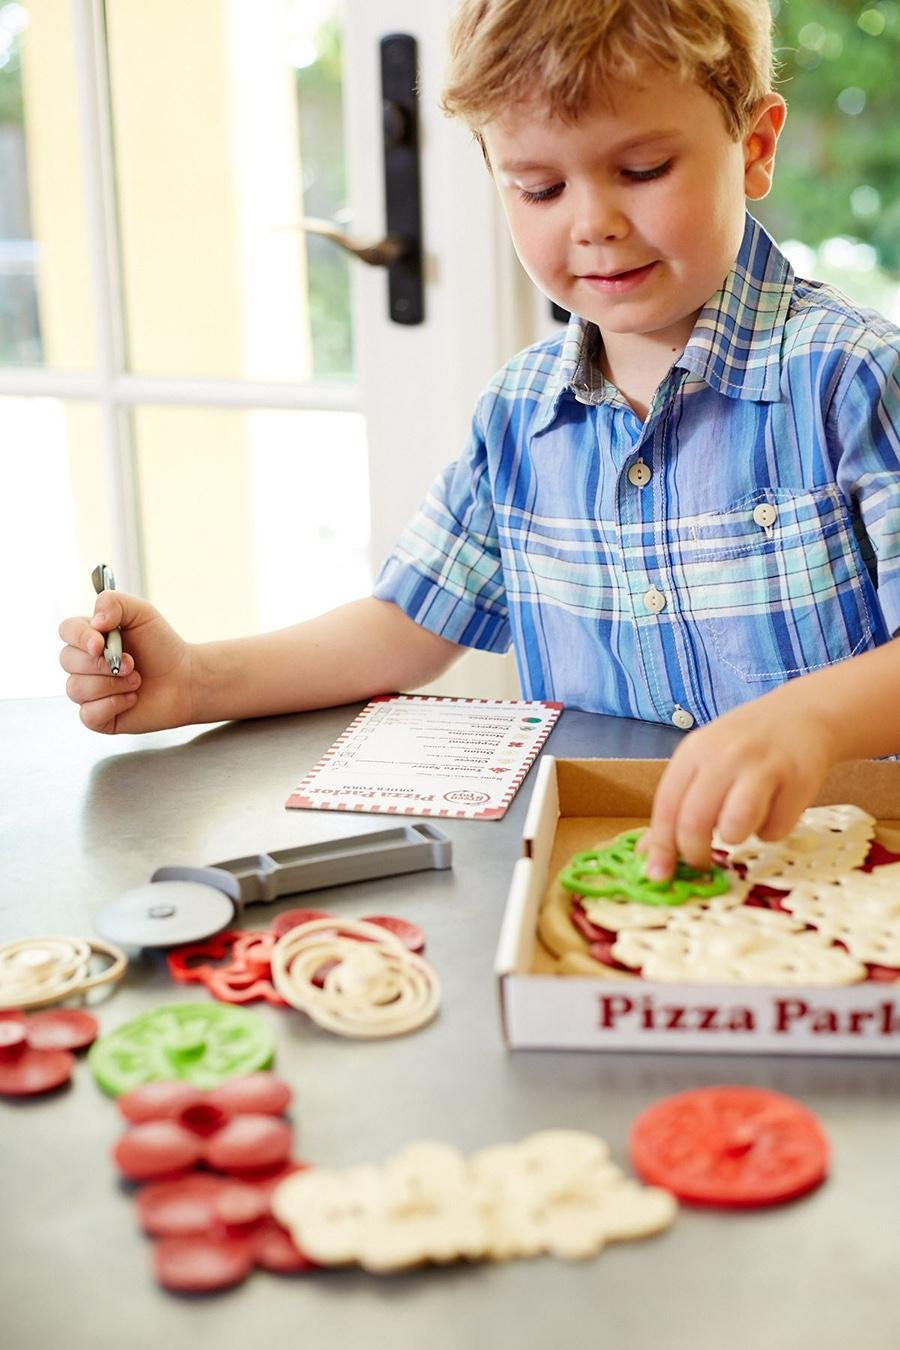 Green Toys Pizza Parlour 2